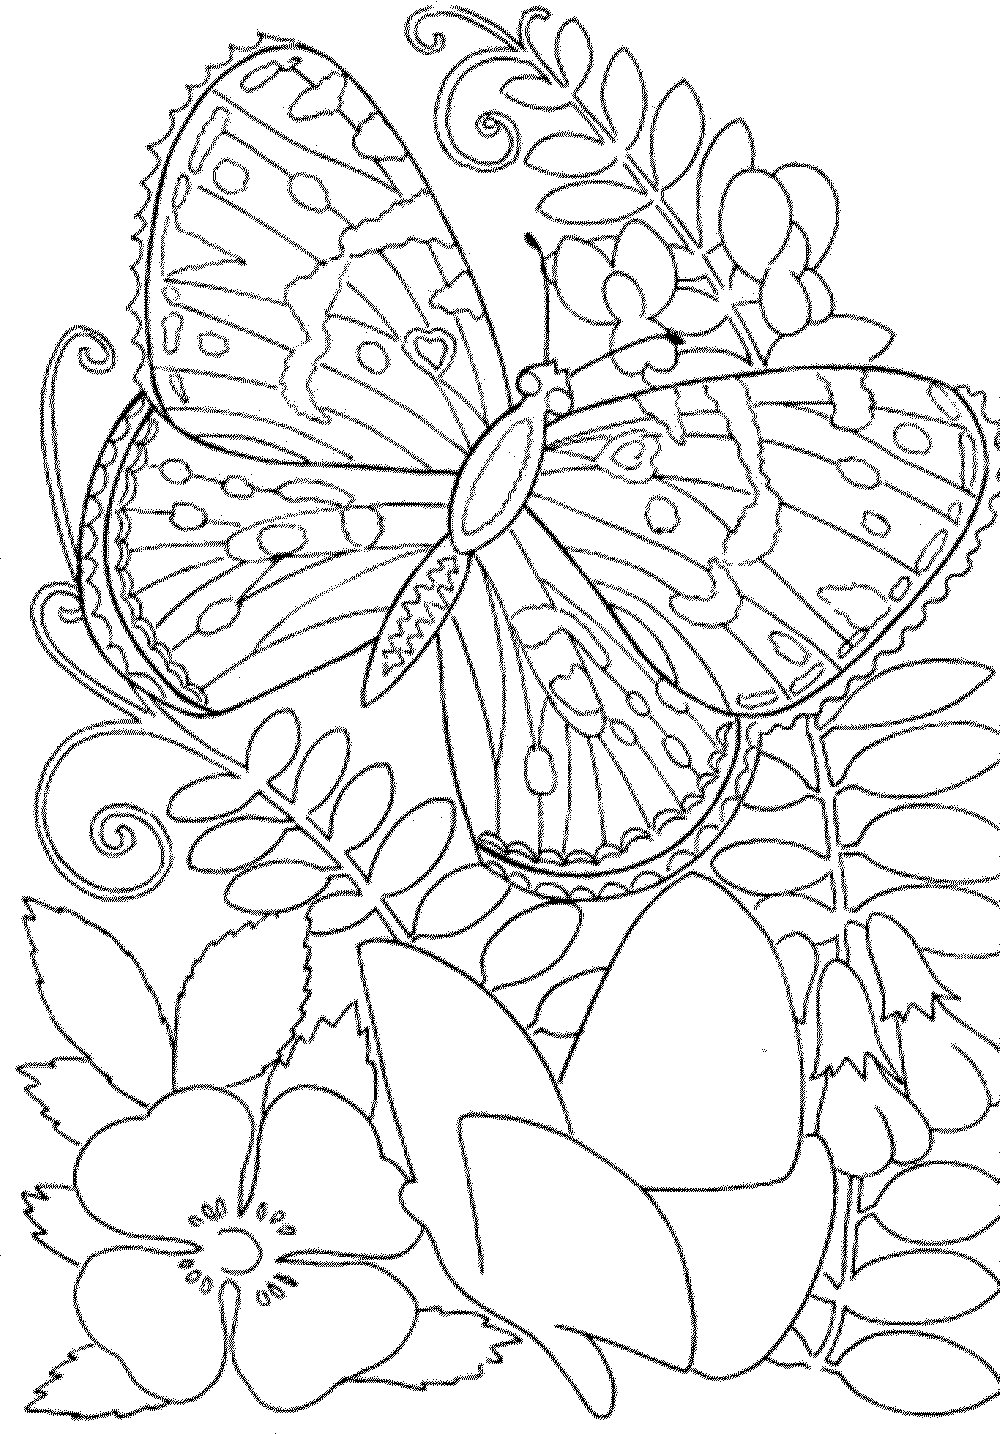 adult coloring pages online grown up coloring pages to download and print for free online adult coloring pages